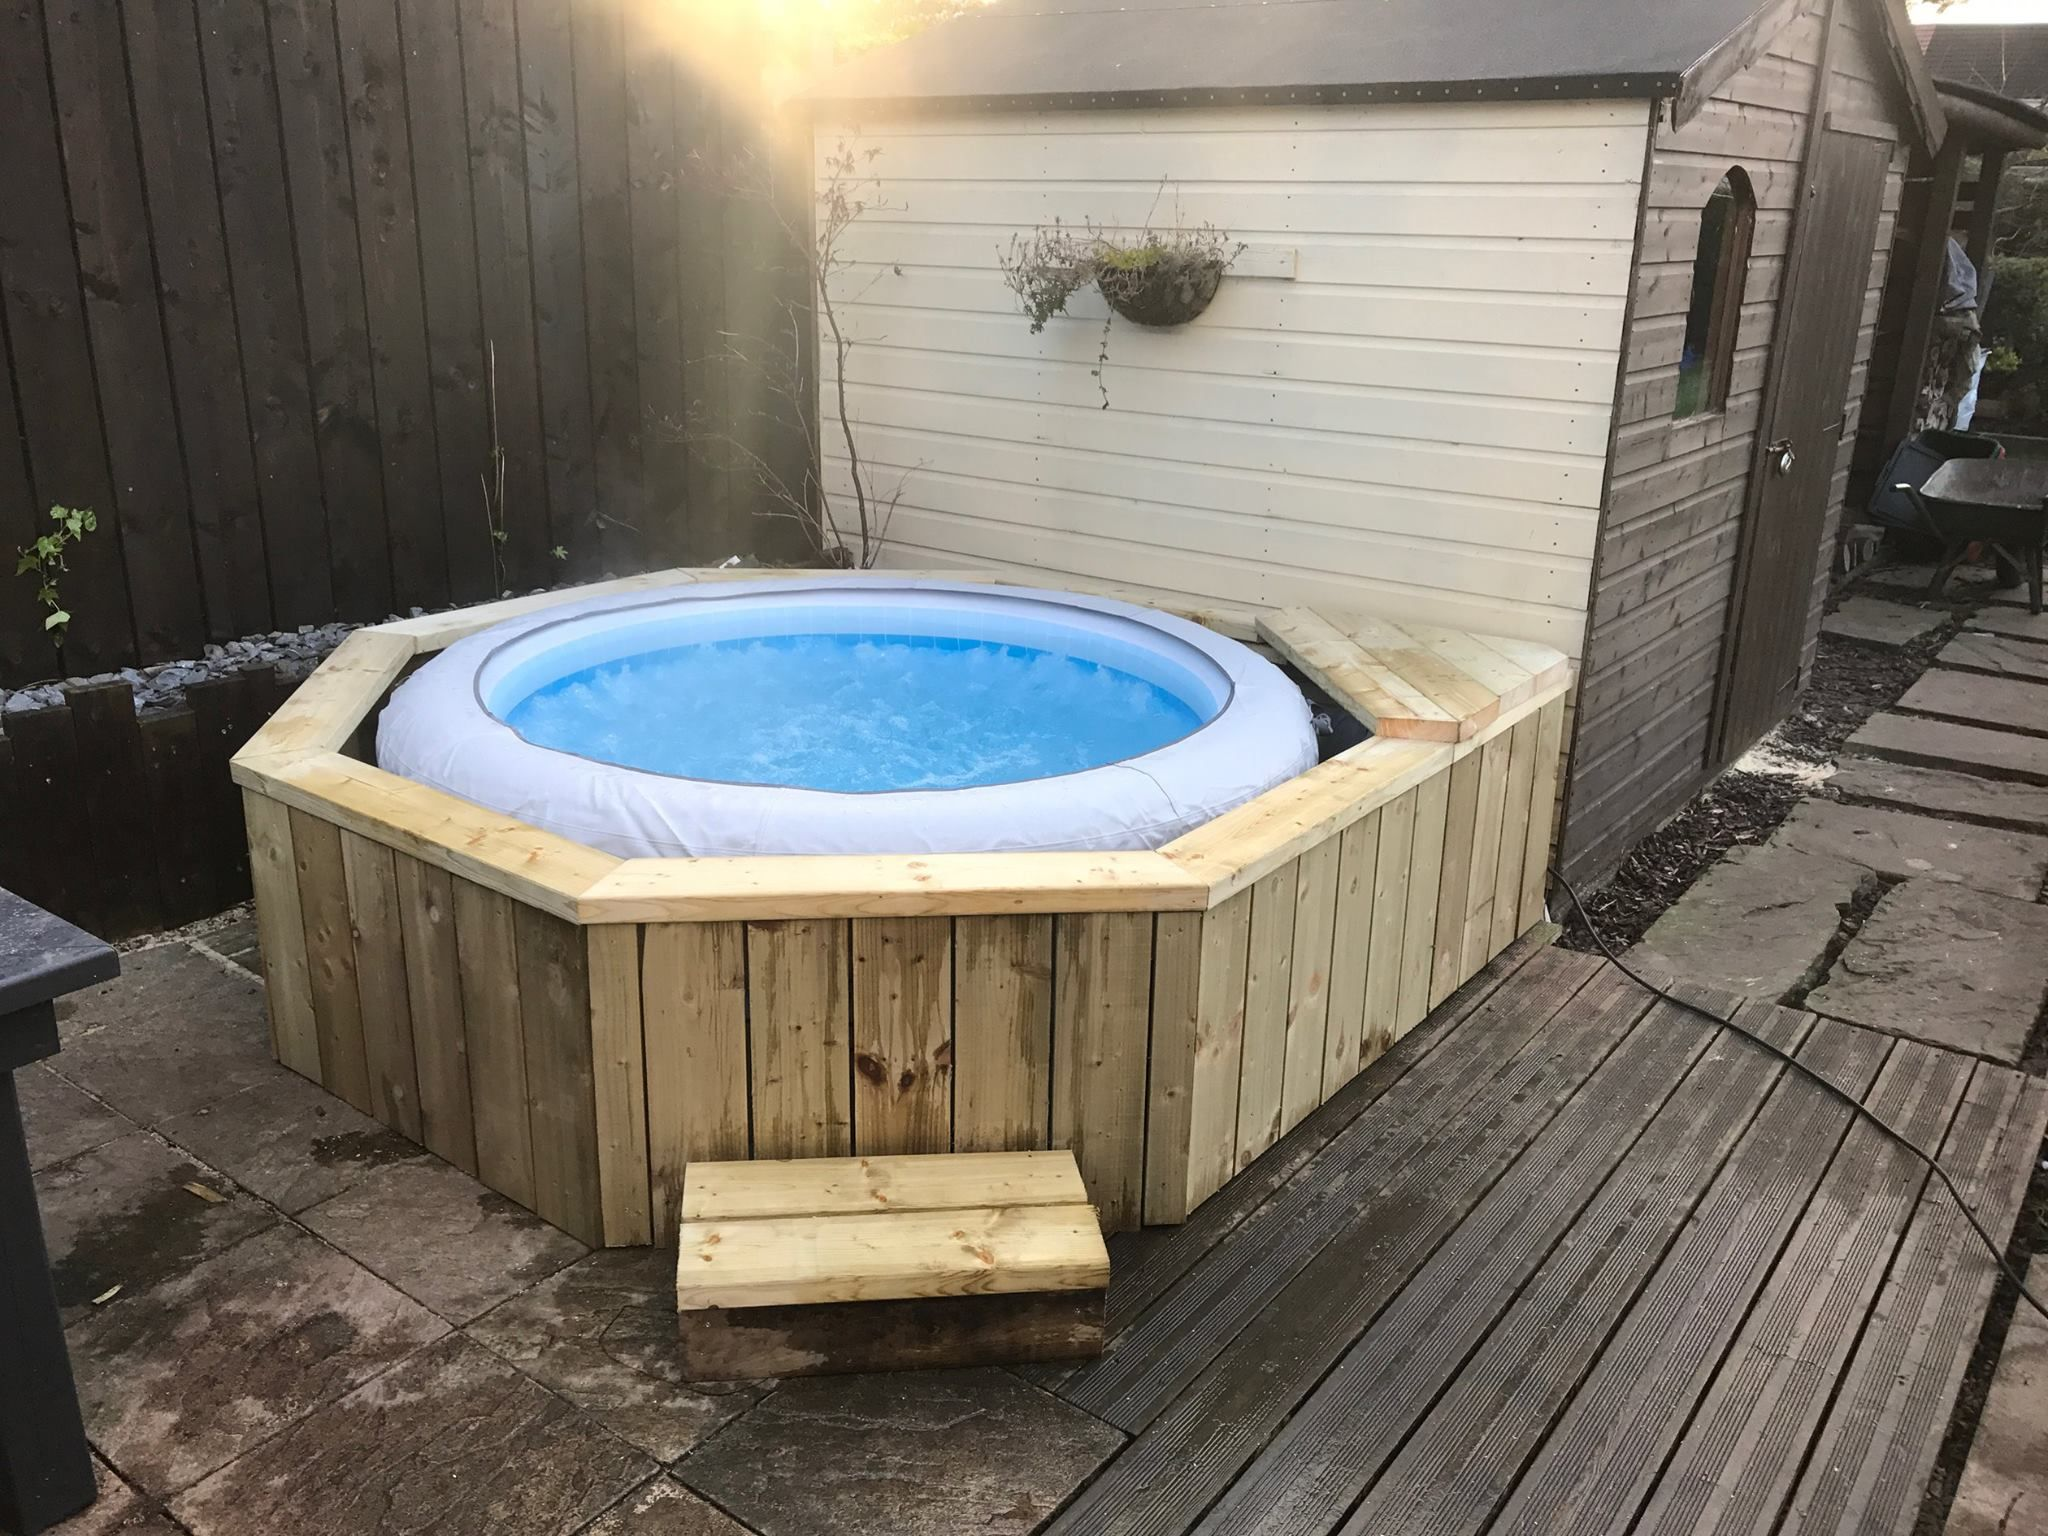 Mini Jacuzzi Exterieur Pin By John Redman On Projects To Try Jacuzzi Extérieur Piscine